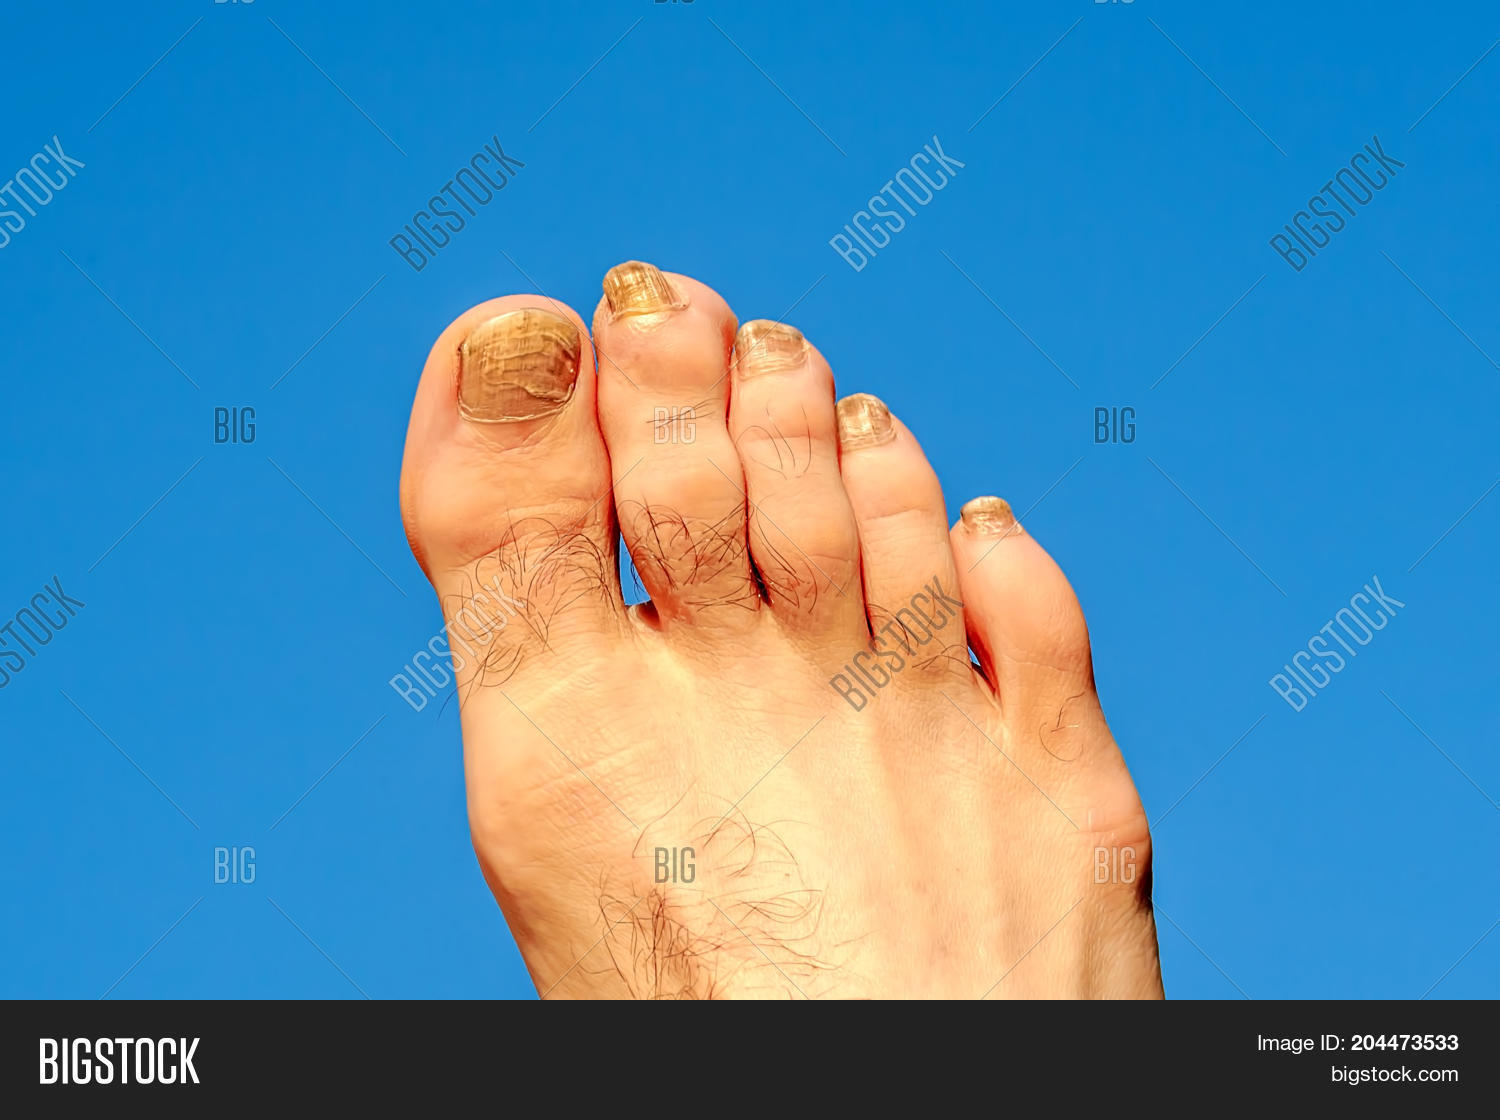 Toes Male Foot Image & Photo (Free Trial) | Bigstock